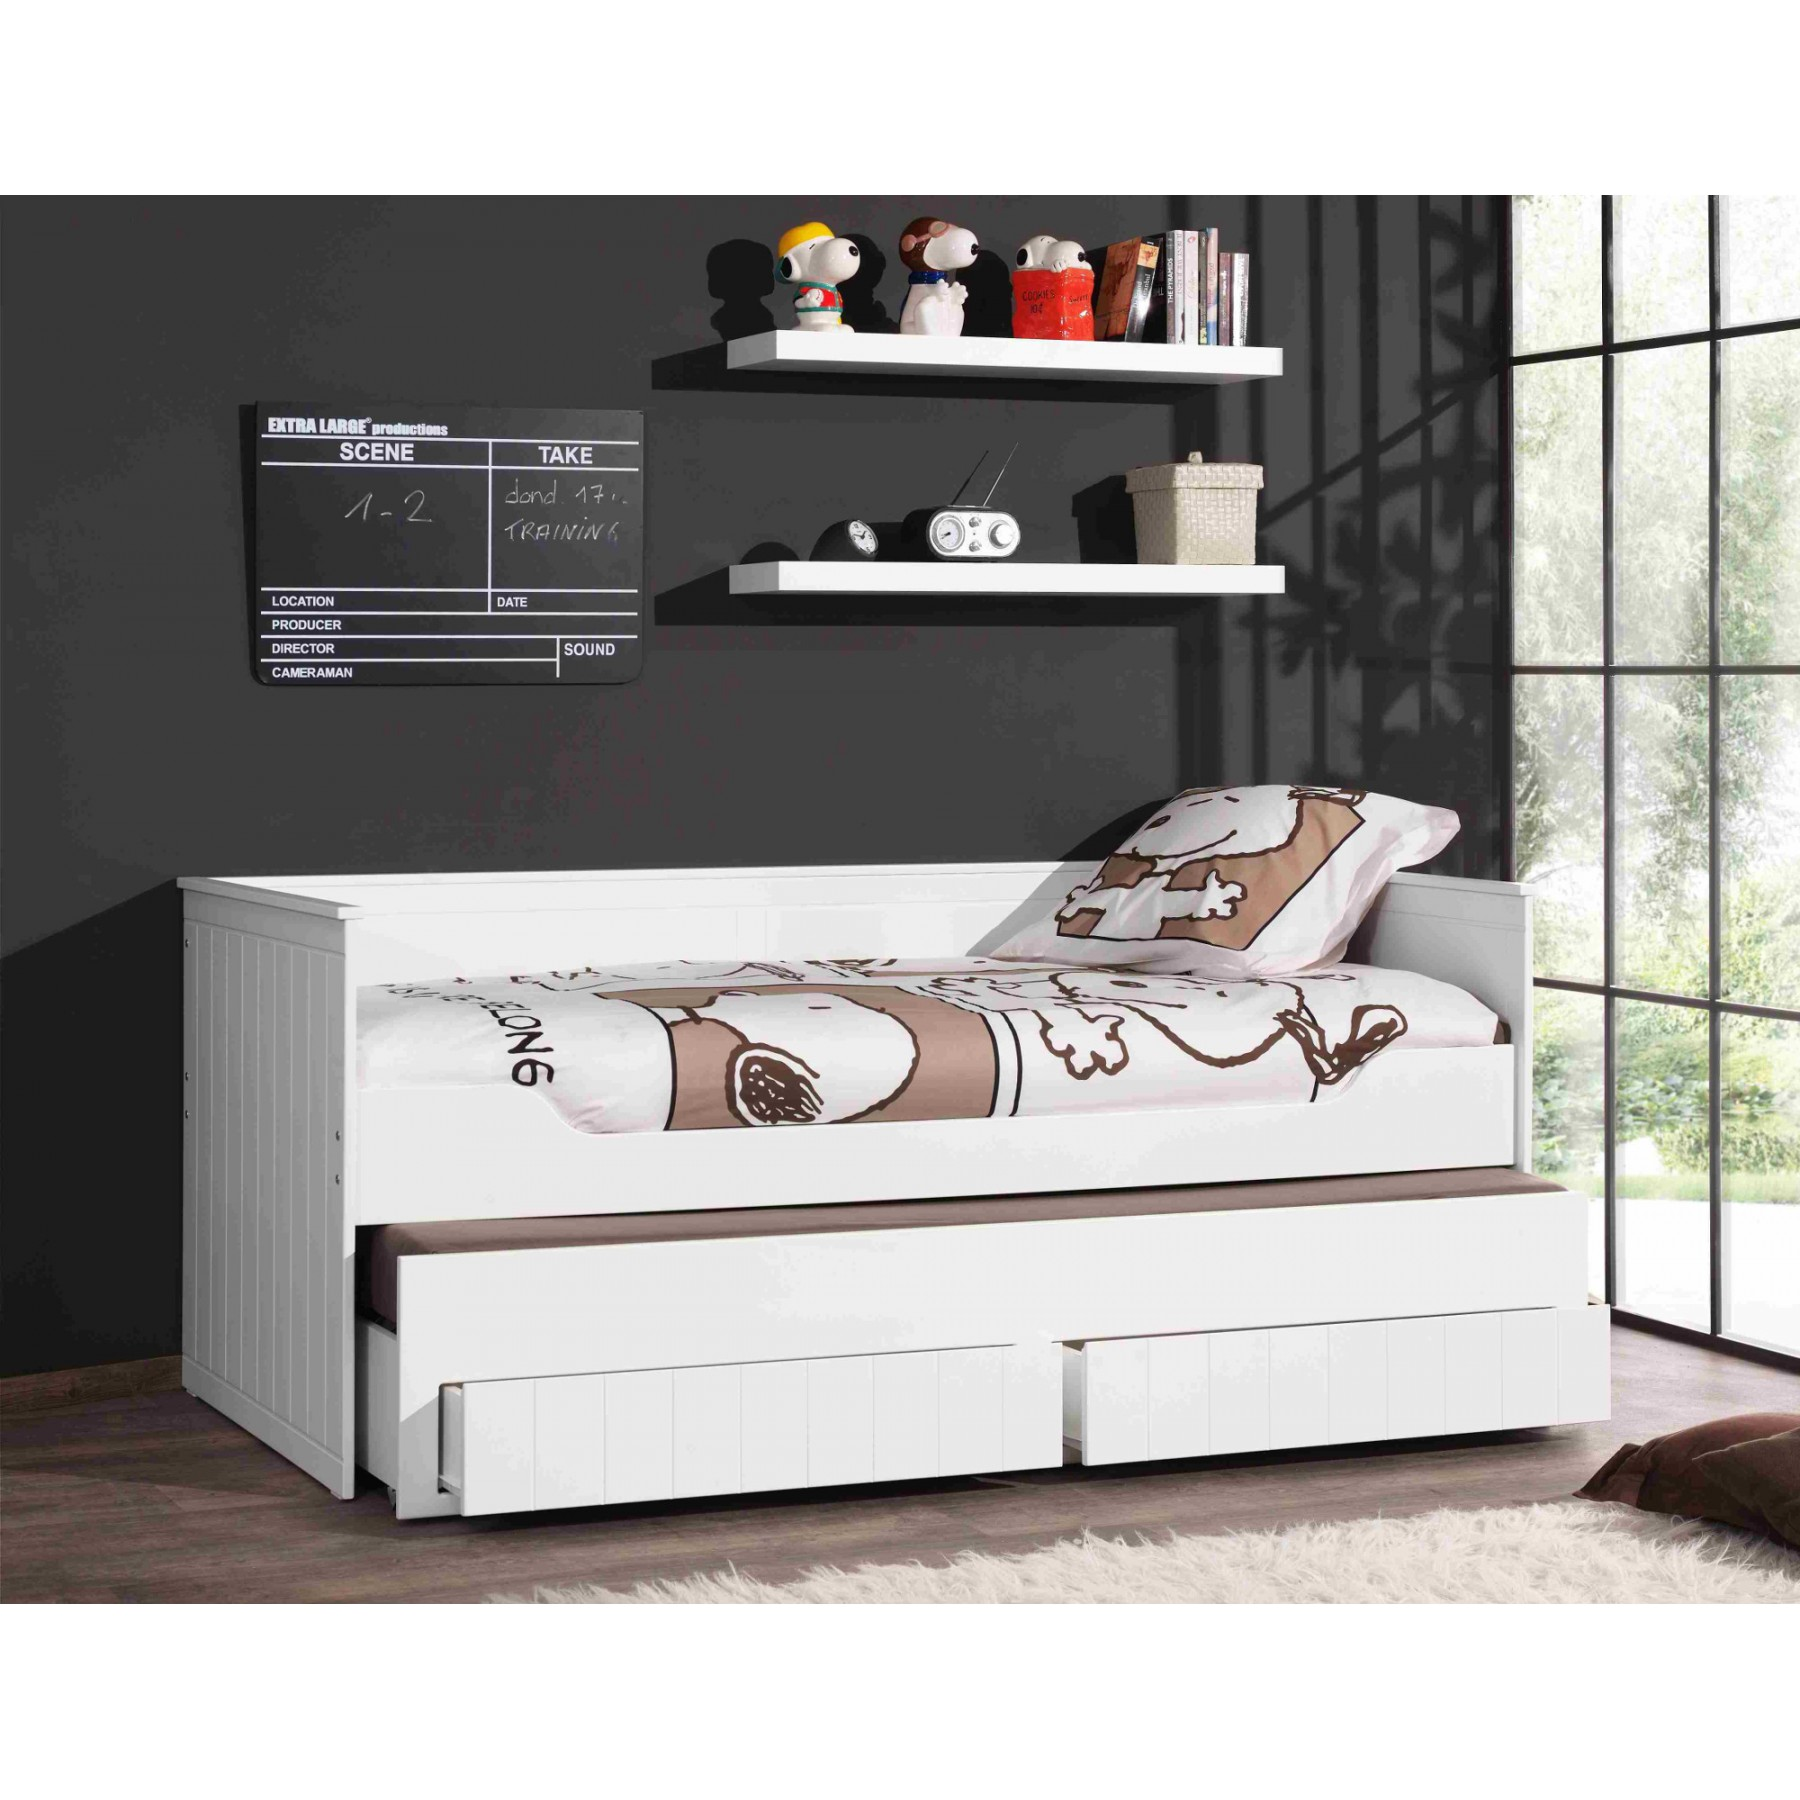 matelas lit gigogne lit gigogne enfant milo blanc 90x200 2 matelas lit gigogne en bois. Black Bedroom Furniture Sets. Home Design Ideas